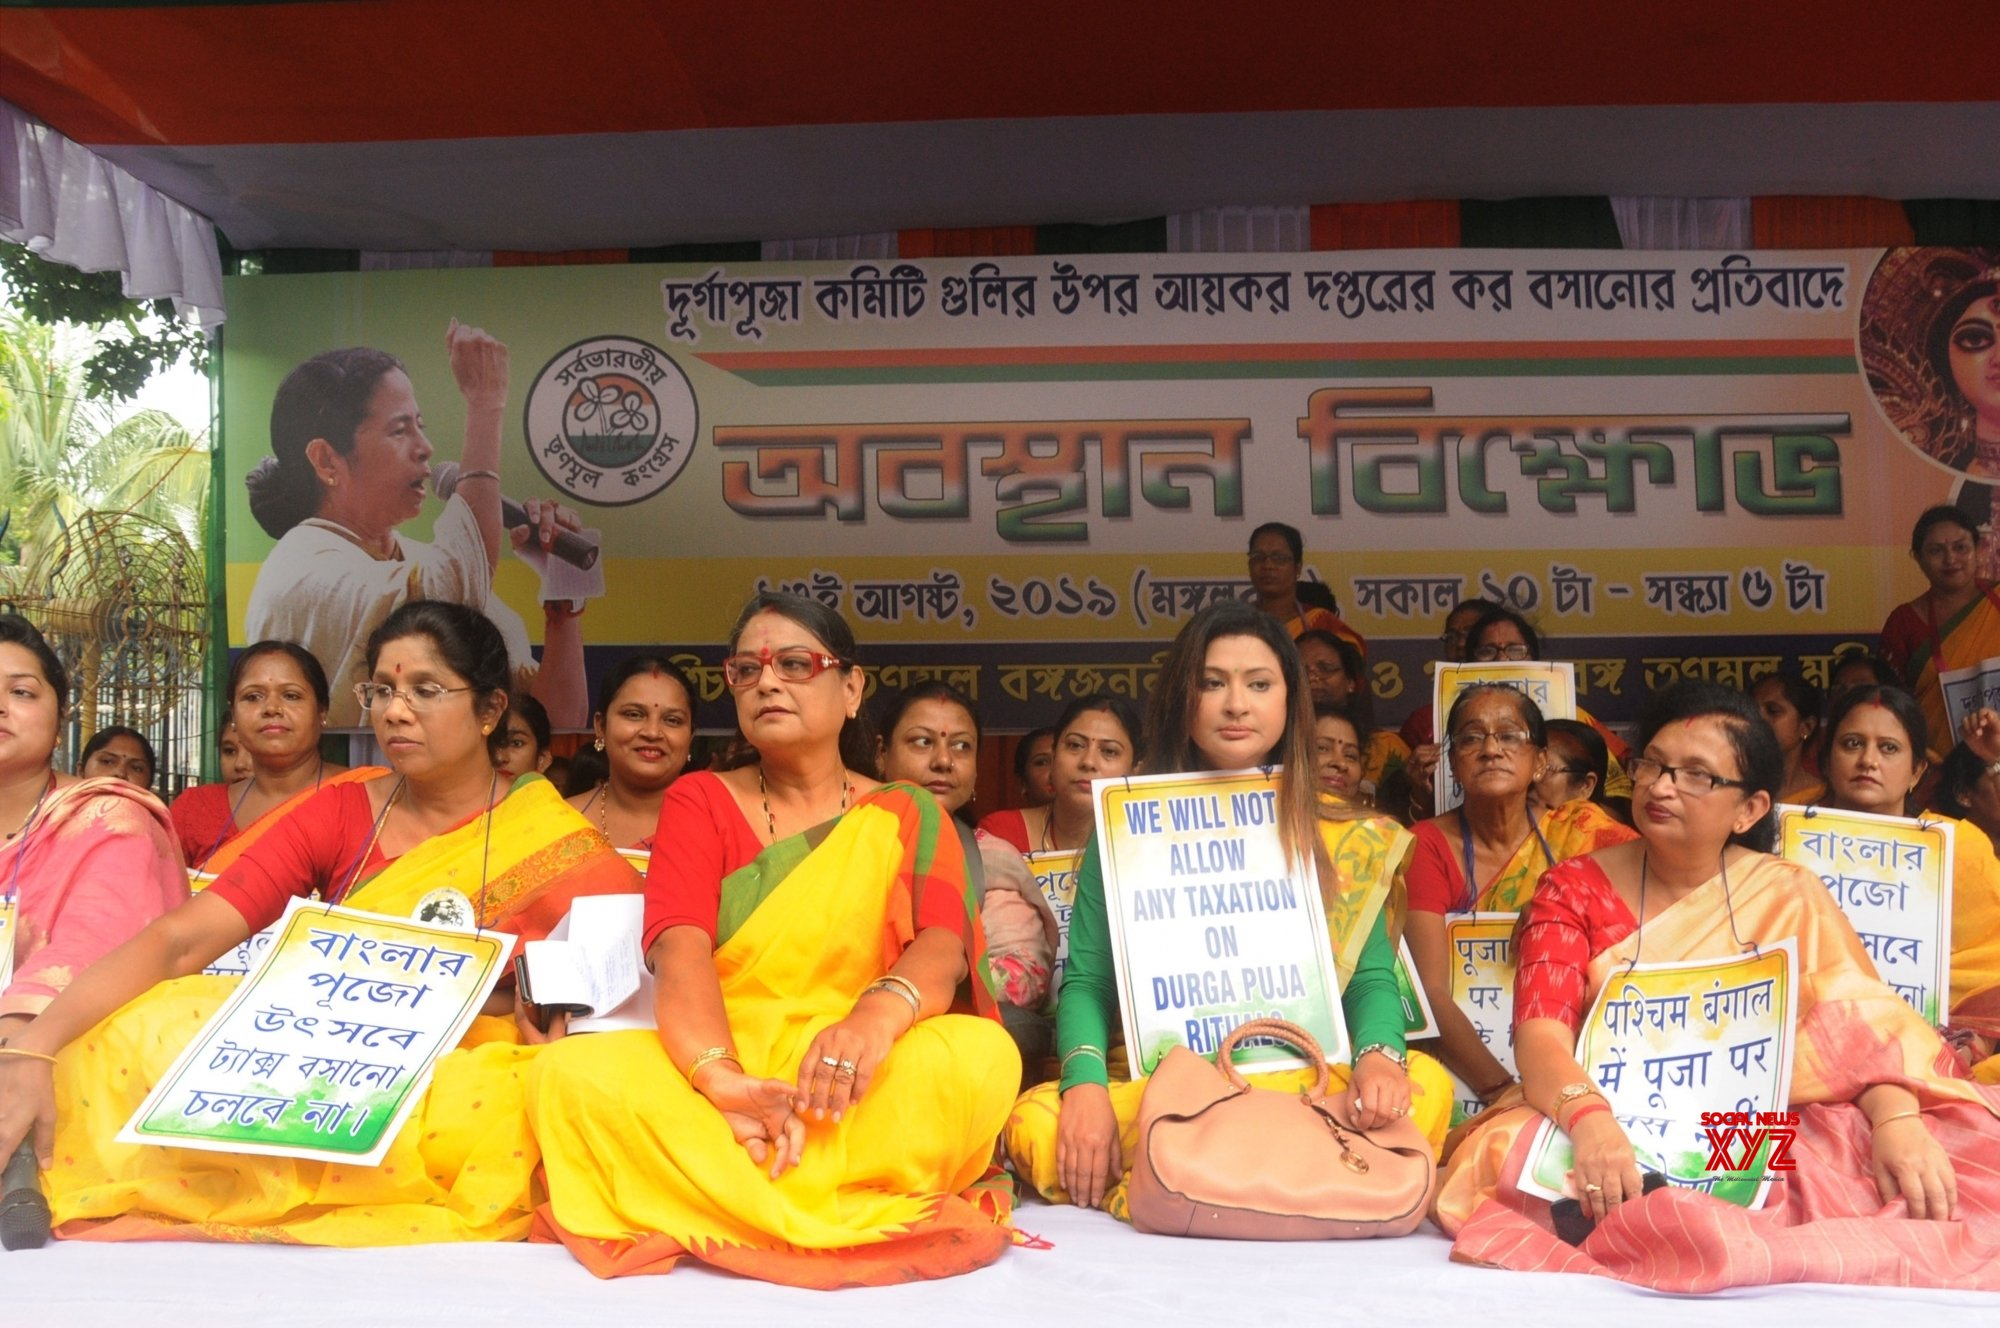 Kolkata: Trinamool stages protest over notice to Durga Puja committees #Gallery